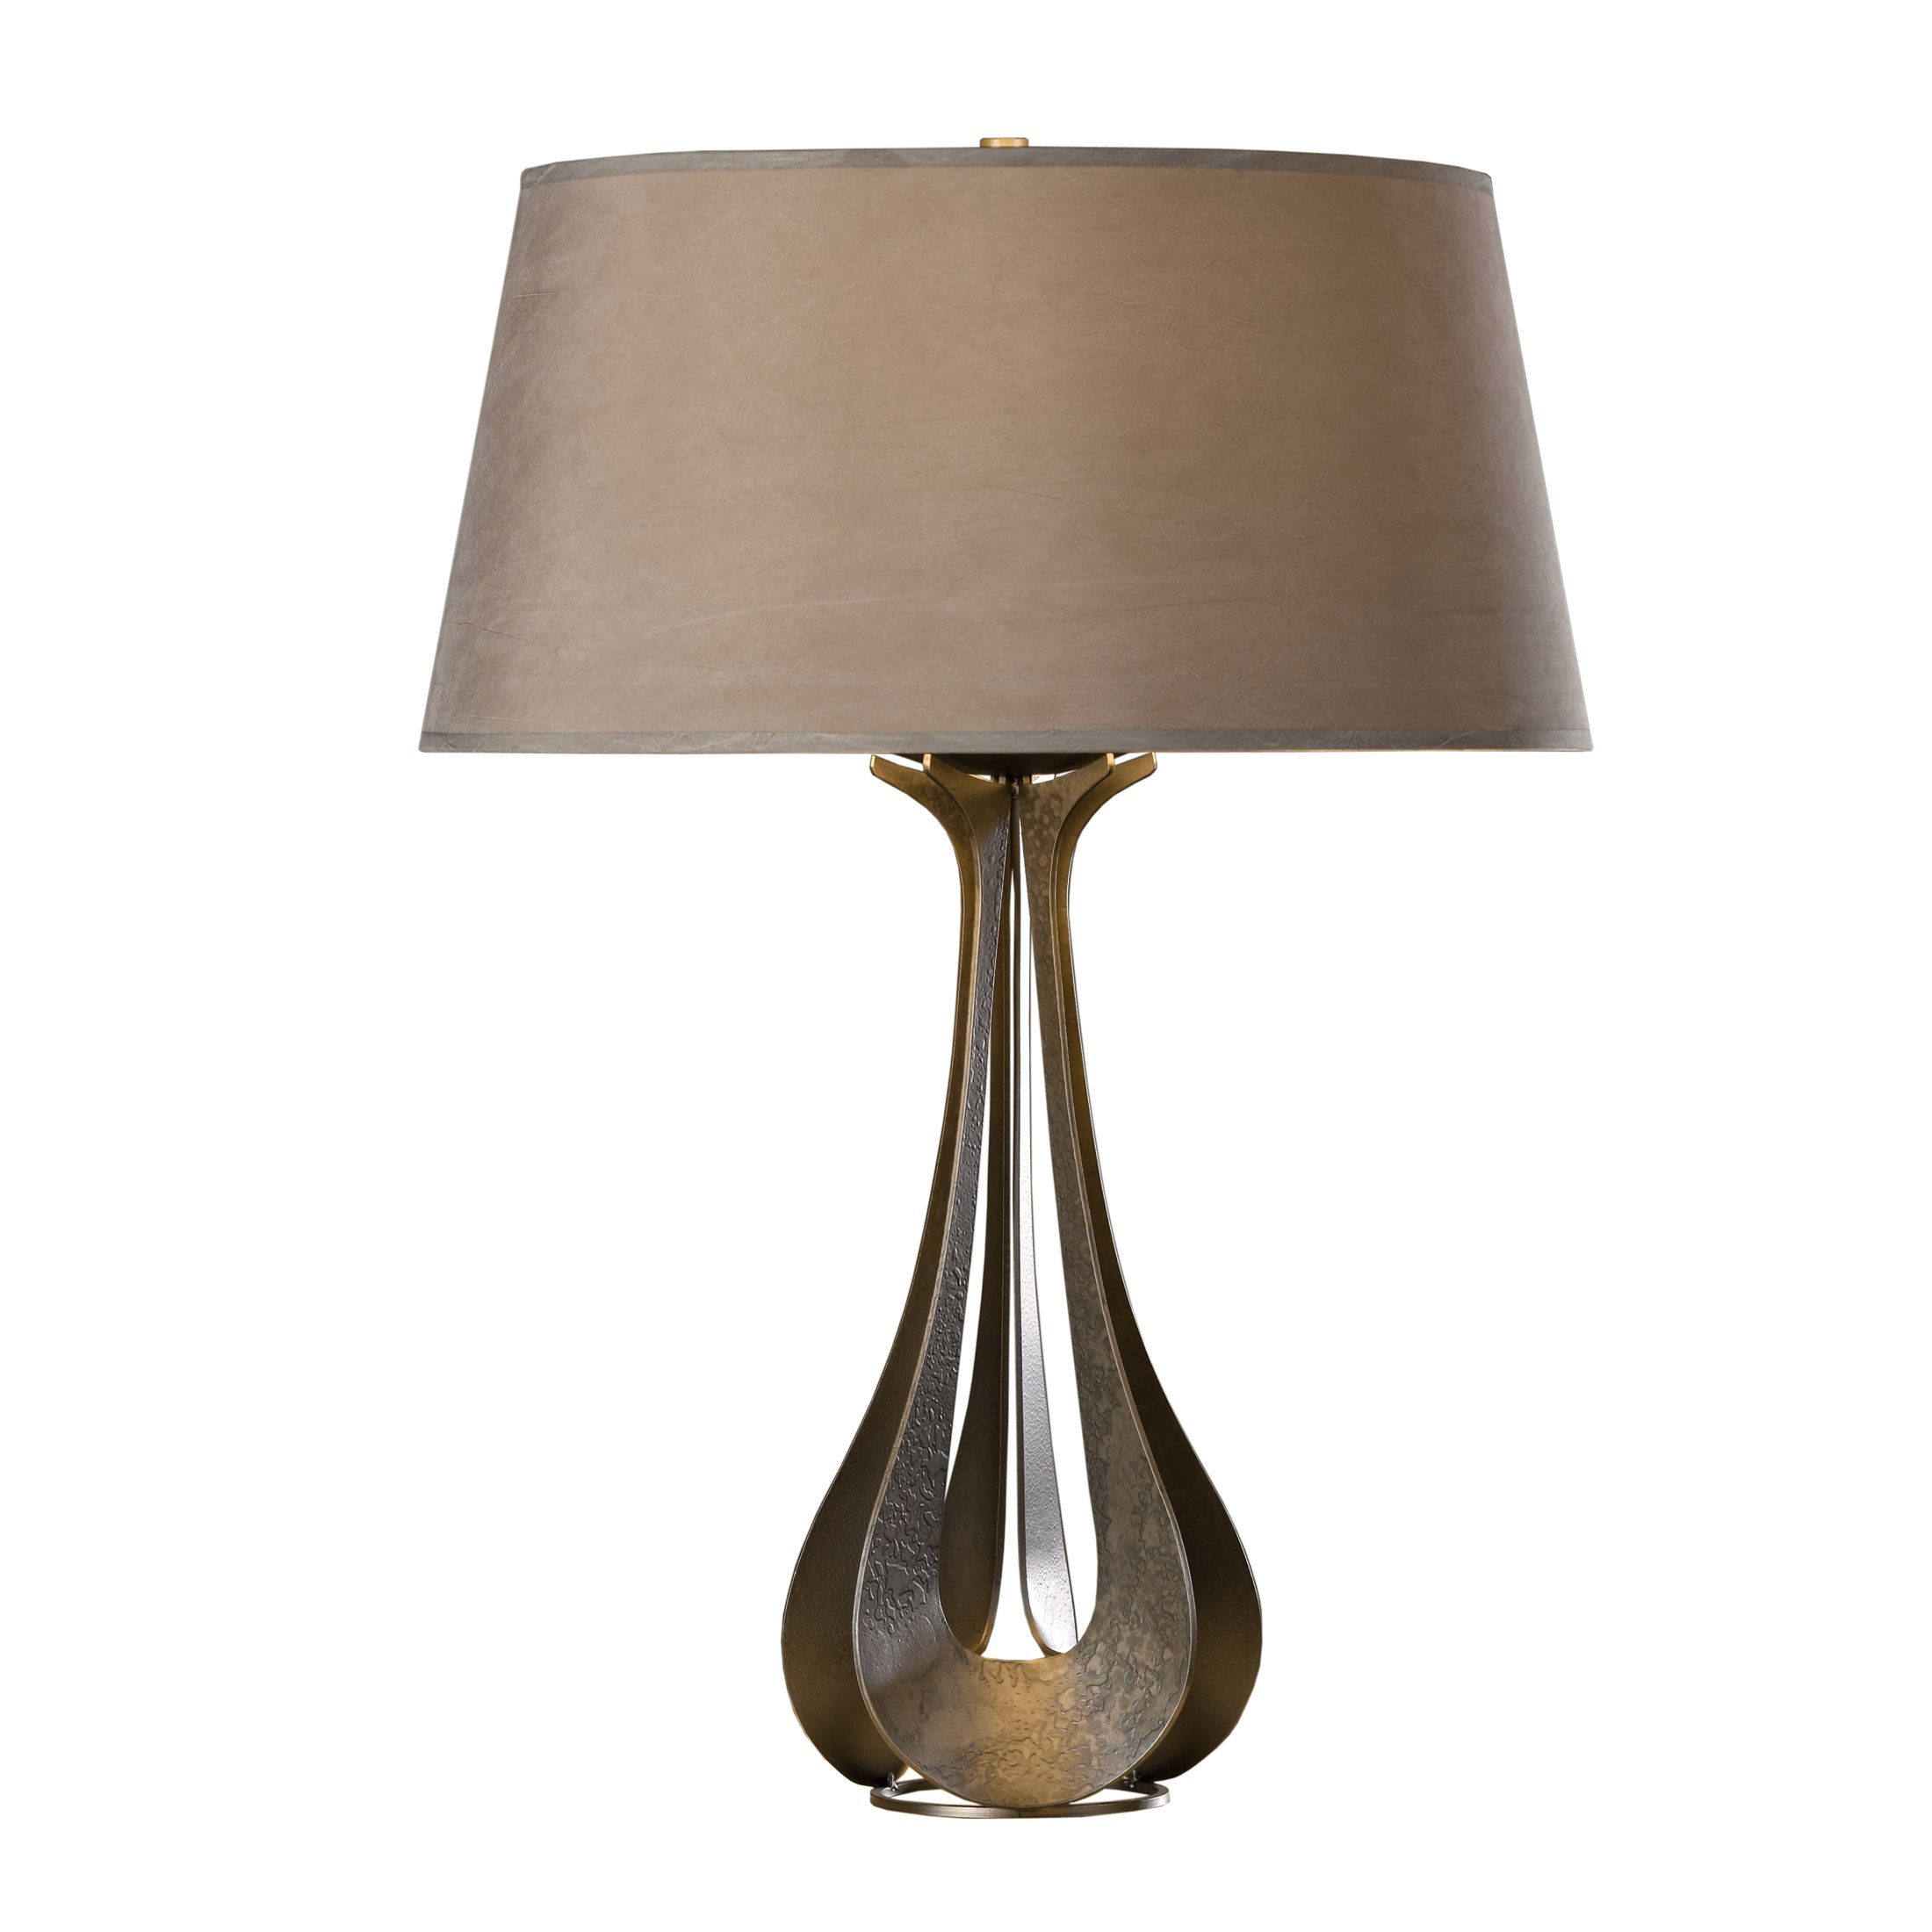 Lino table lamp hubbardton forge product detail lino table lamp aloadofball Choice Image